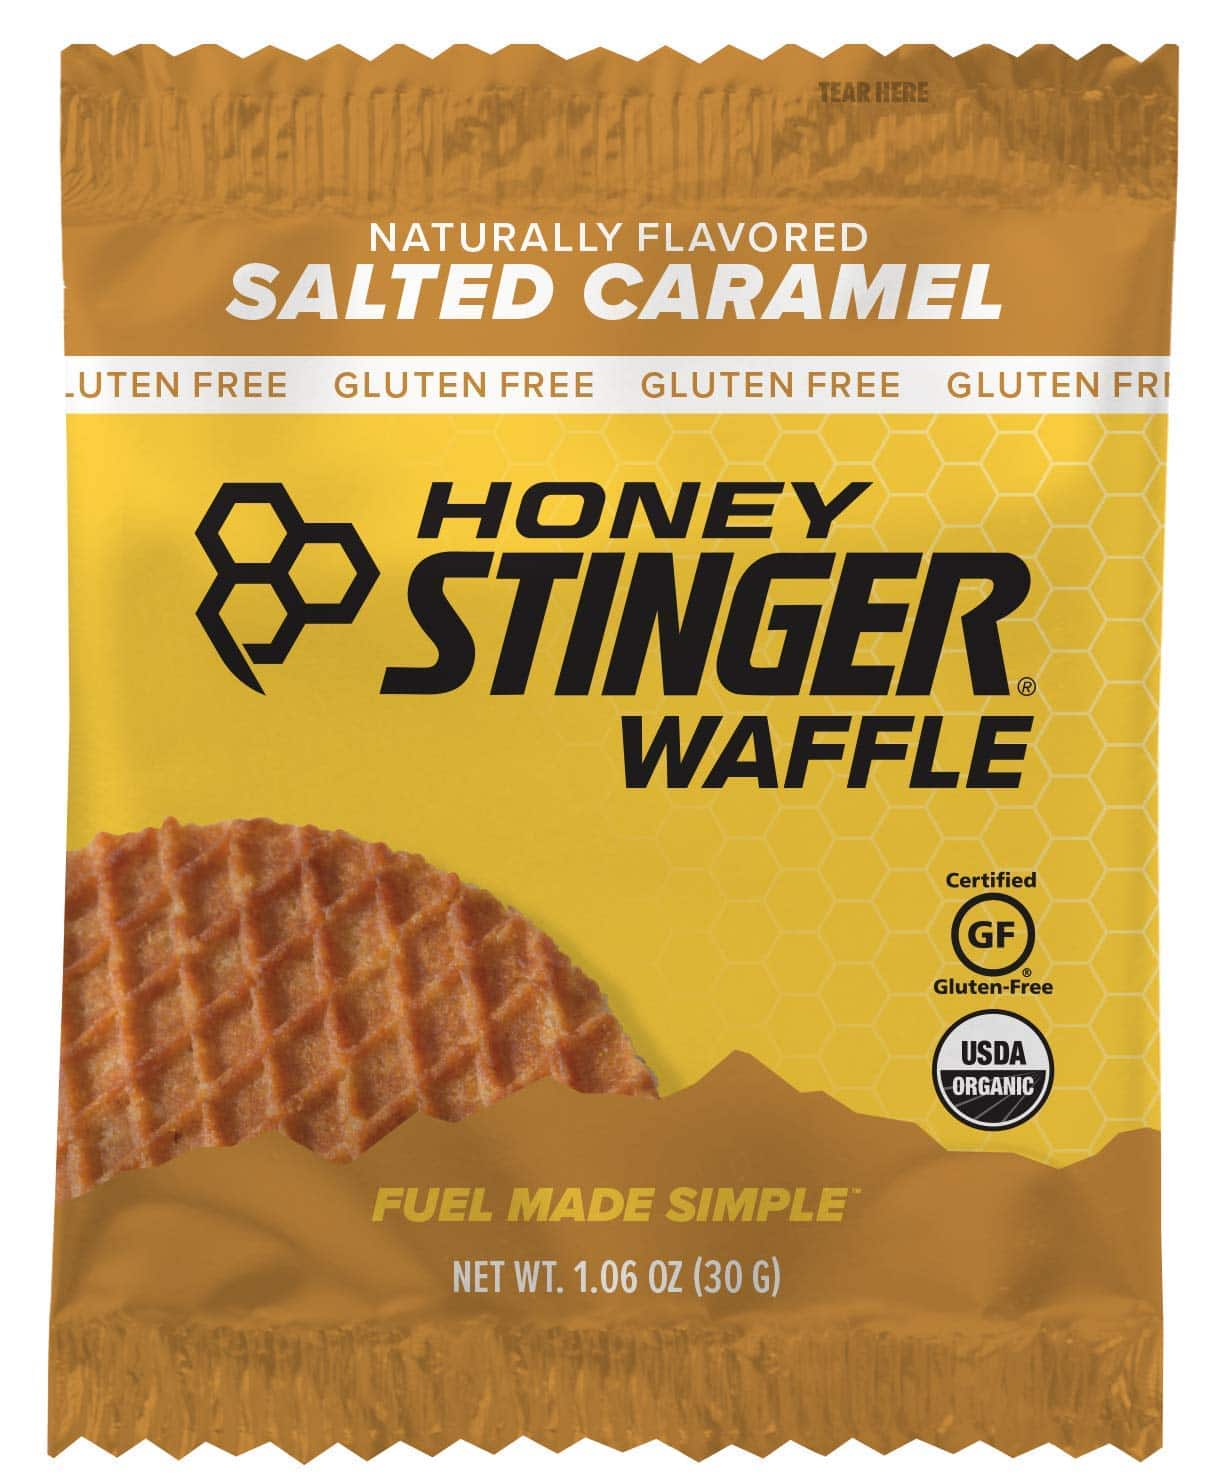 Honey Stinger Organic Gluten Free Waffle, Salted Caramel, Sports Nutrition, 1.06 Ounce (16 Count) $9.23